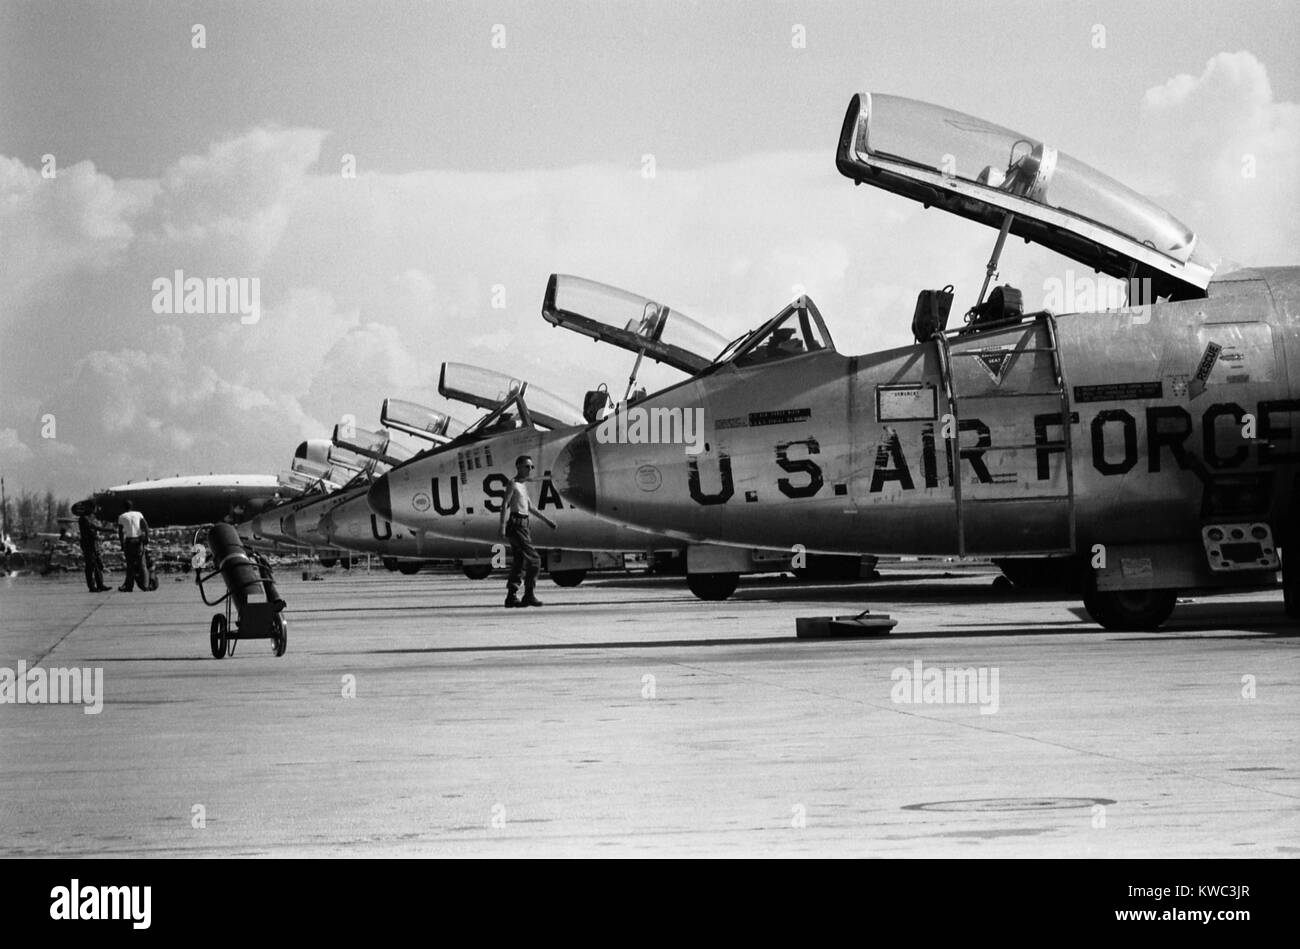 U.S. Air Force jets all with open cockpits on the crowded Da Nang flight line in South Vietnam. Sept. 12, 1965. - Stock Image